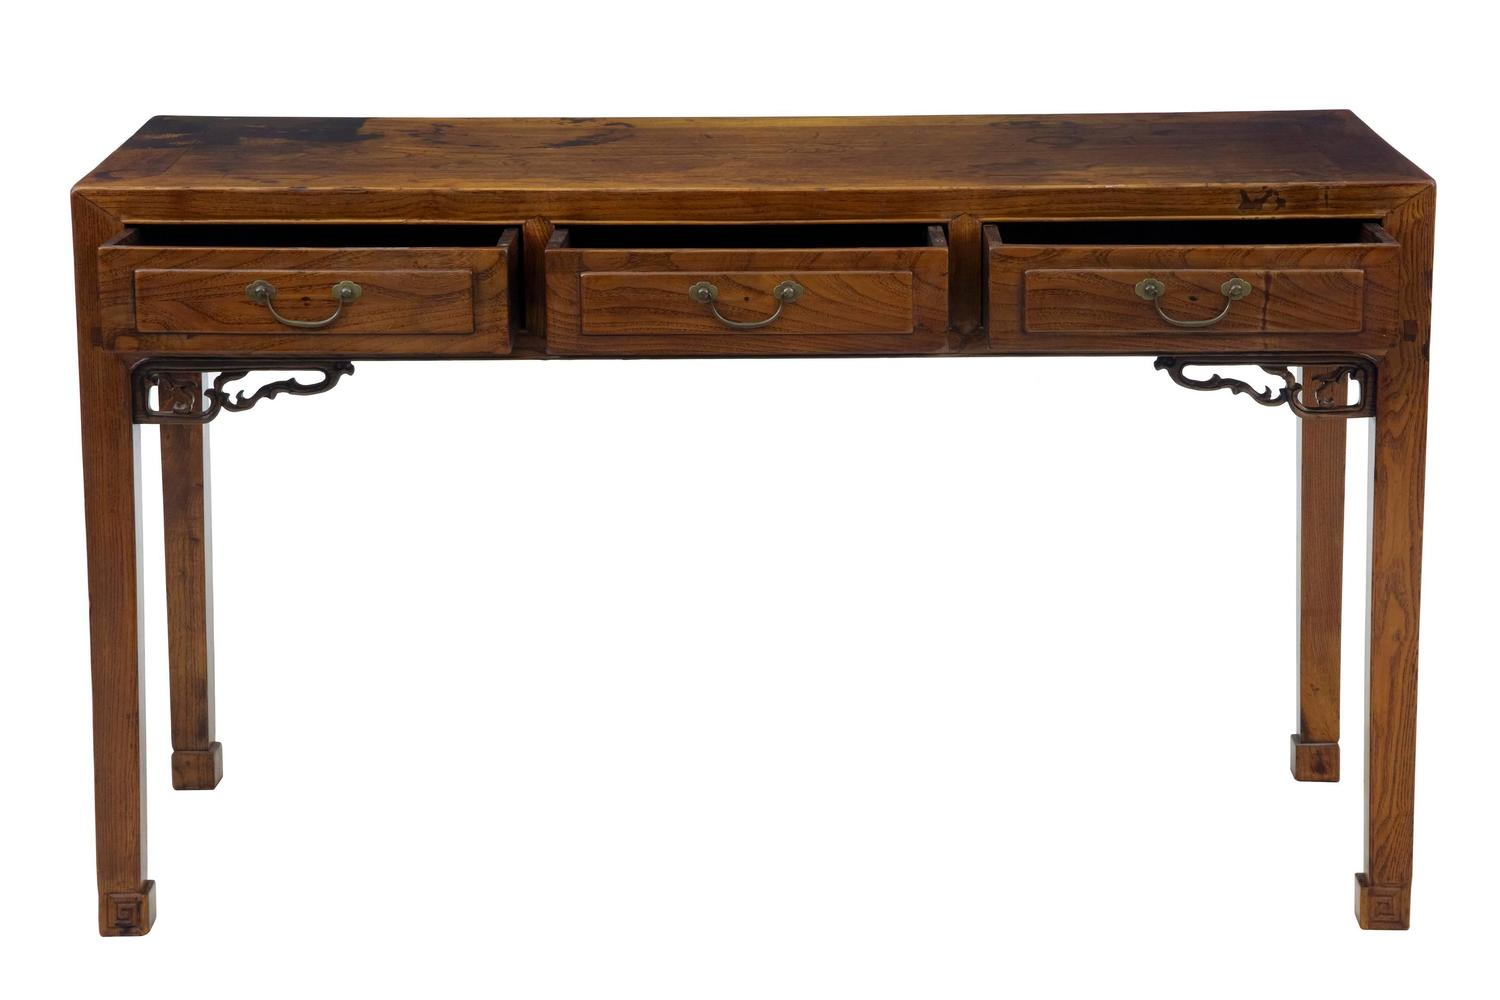 Th century elm chinese console table sideboard for sale